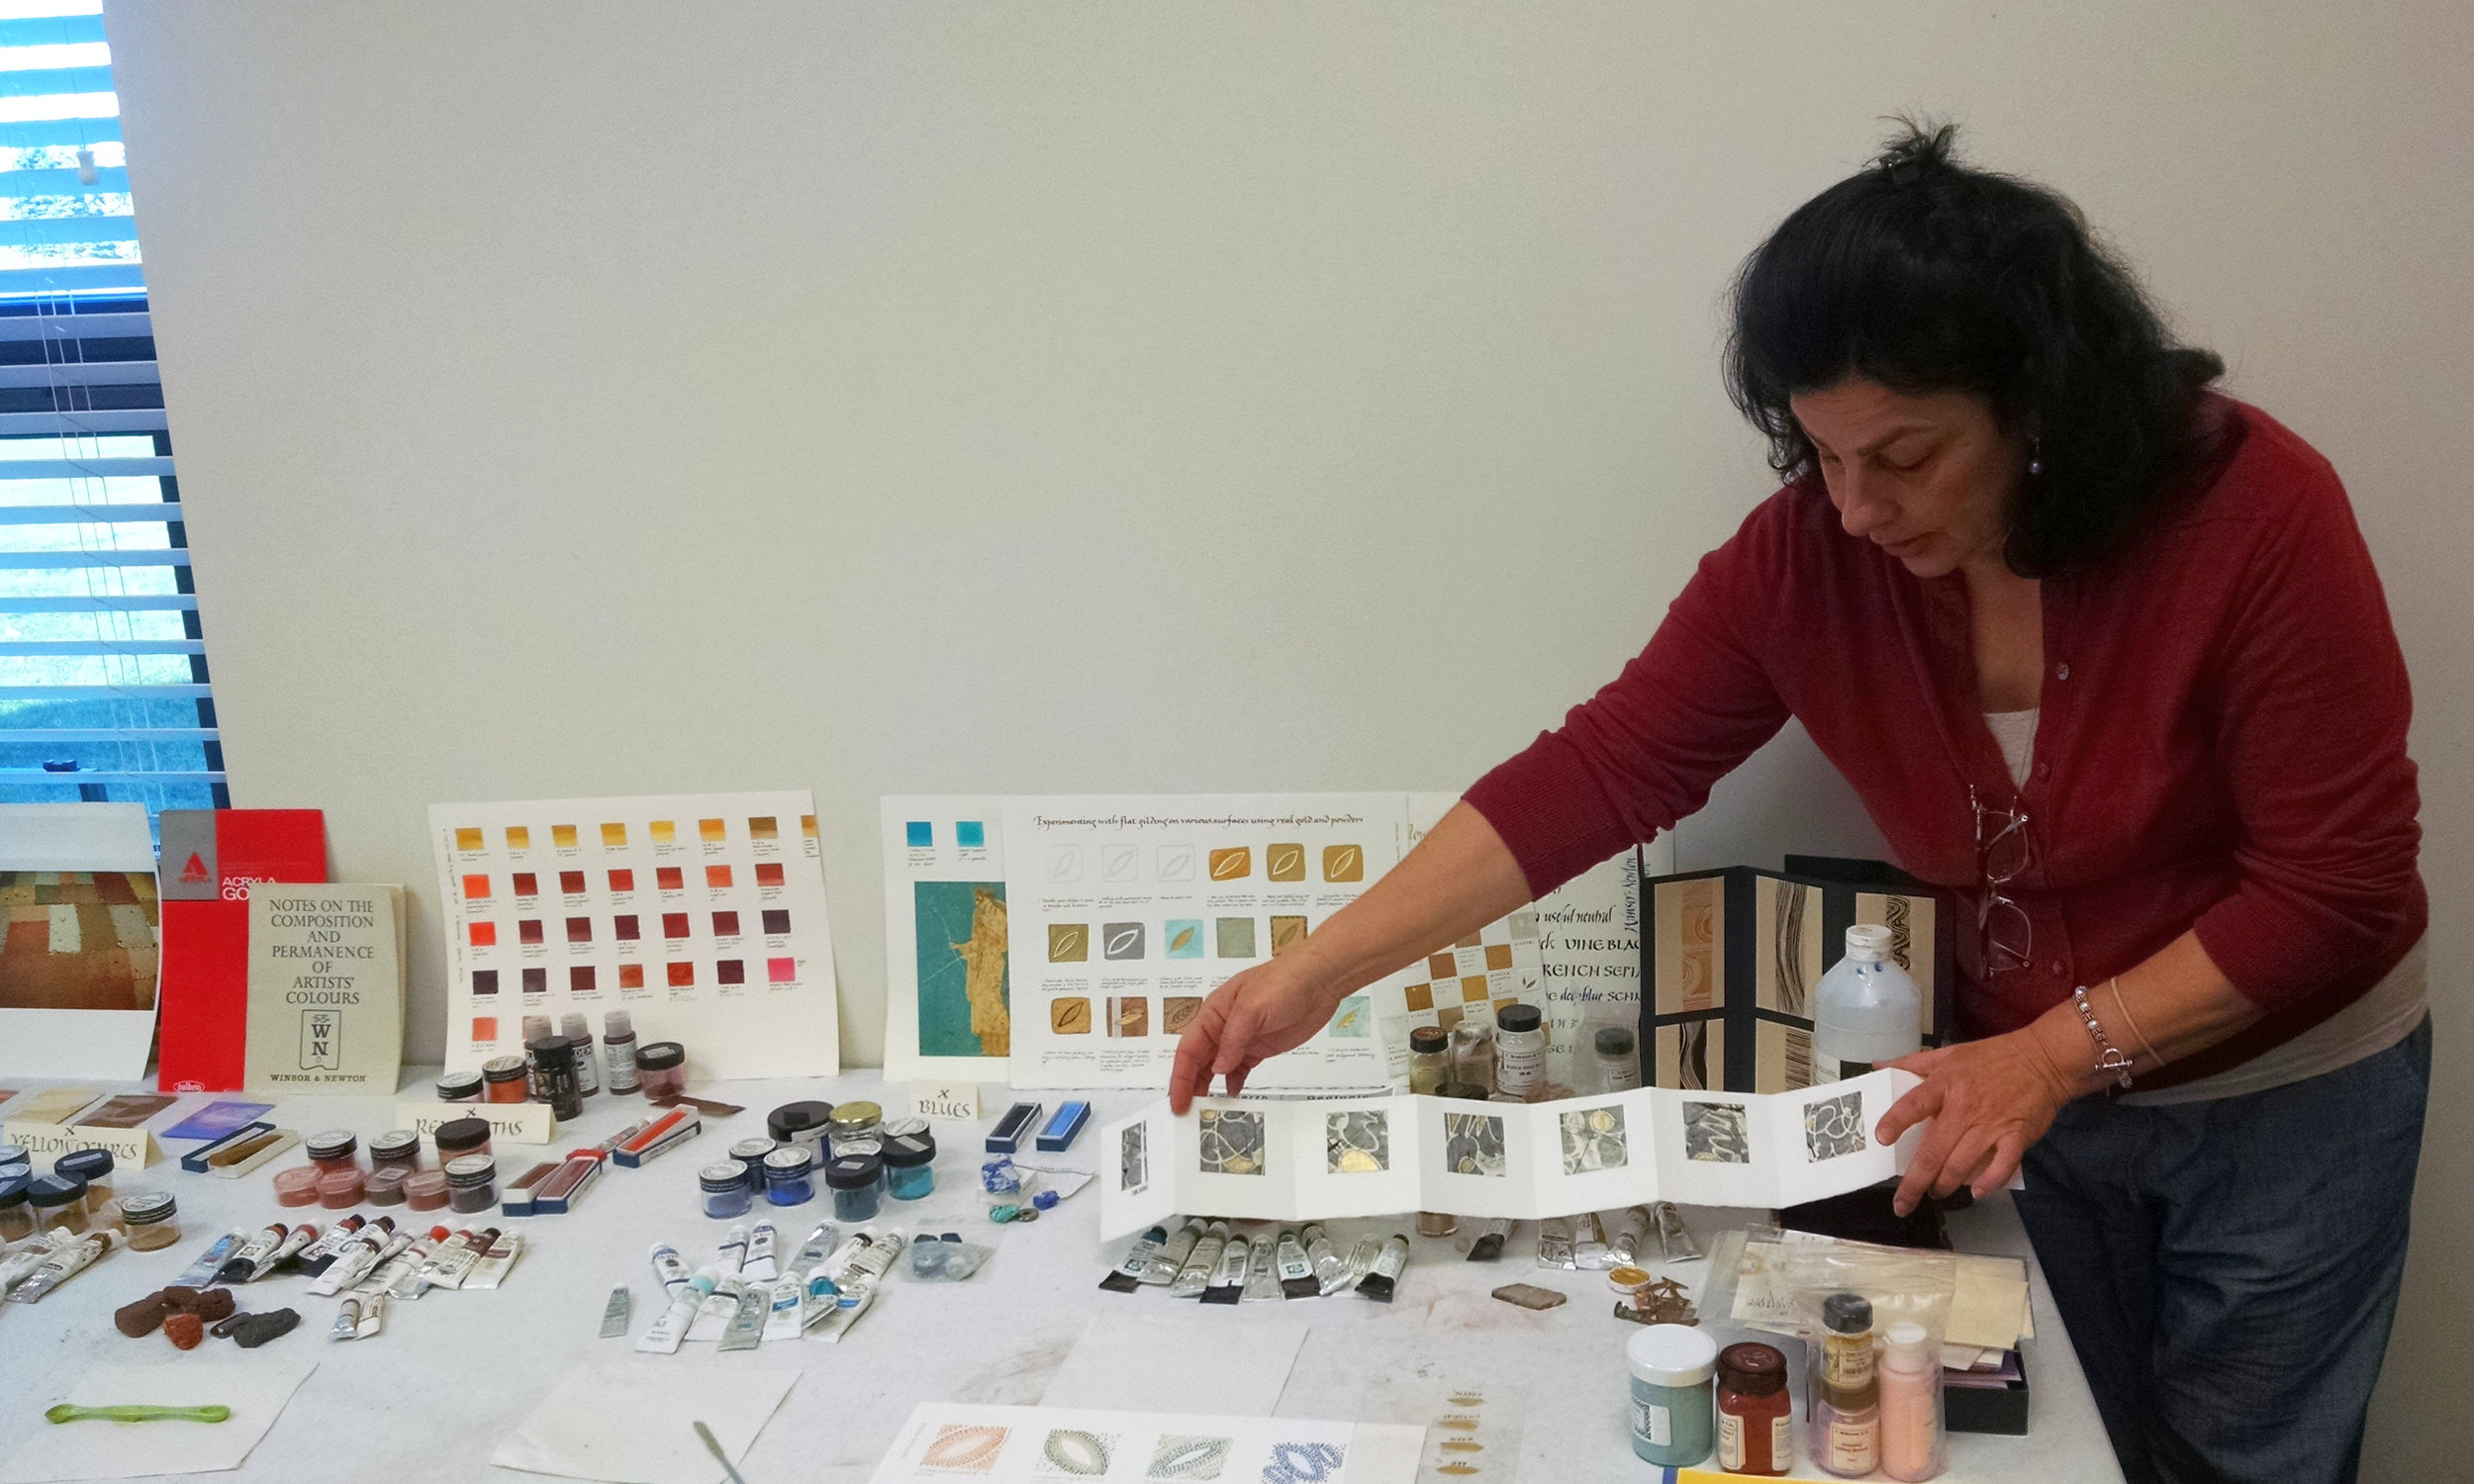 Georgia Angelopoulos showing examples of pigments and gold leaf